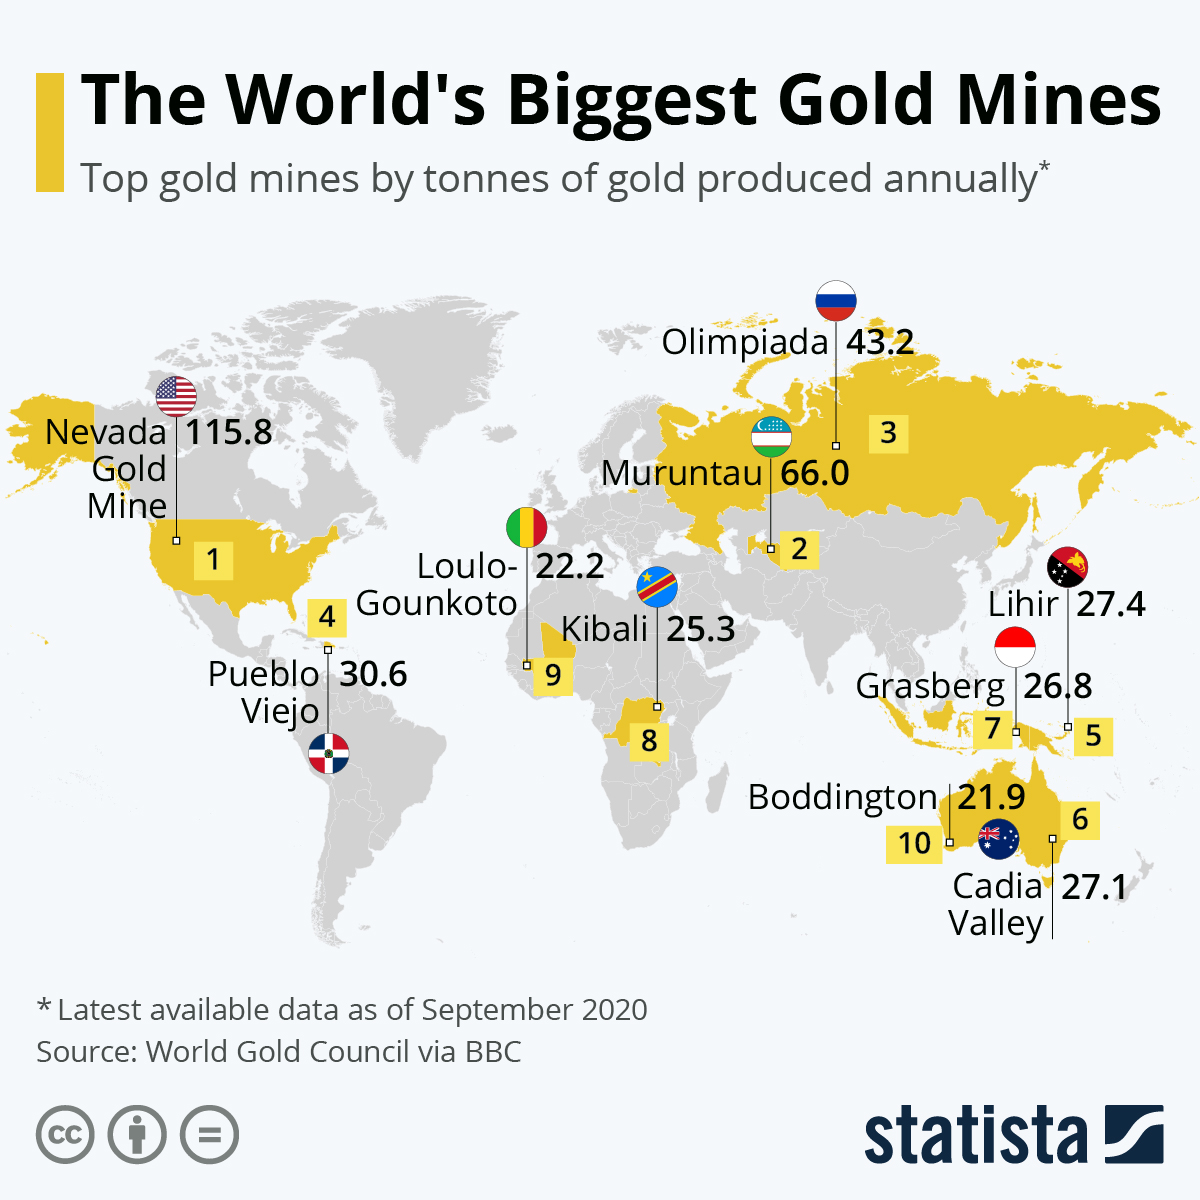 The World's Biggest Gold Mines #infographic